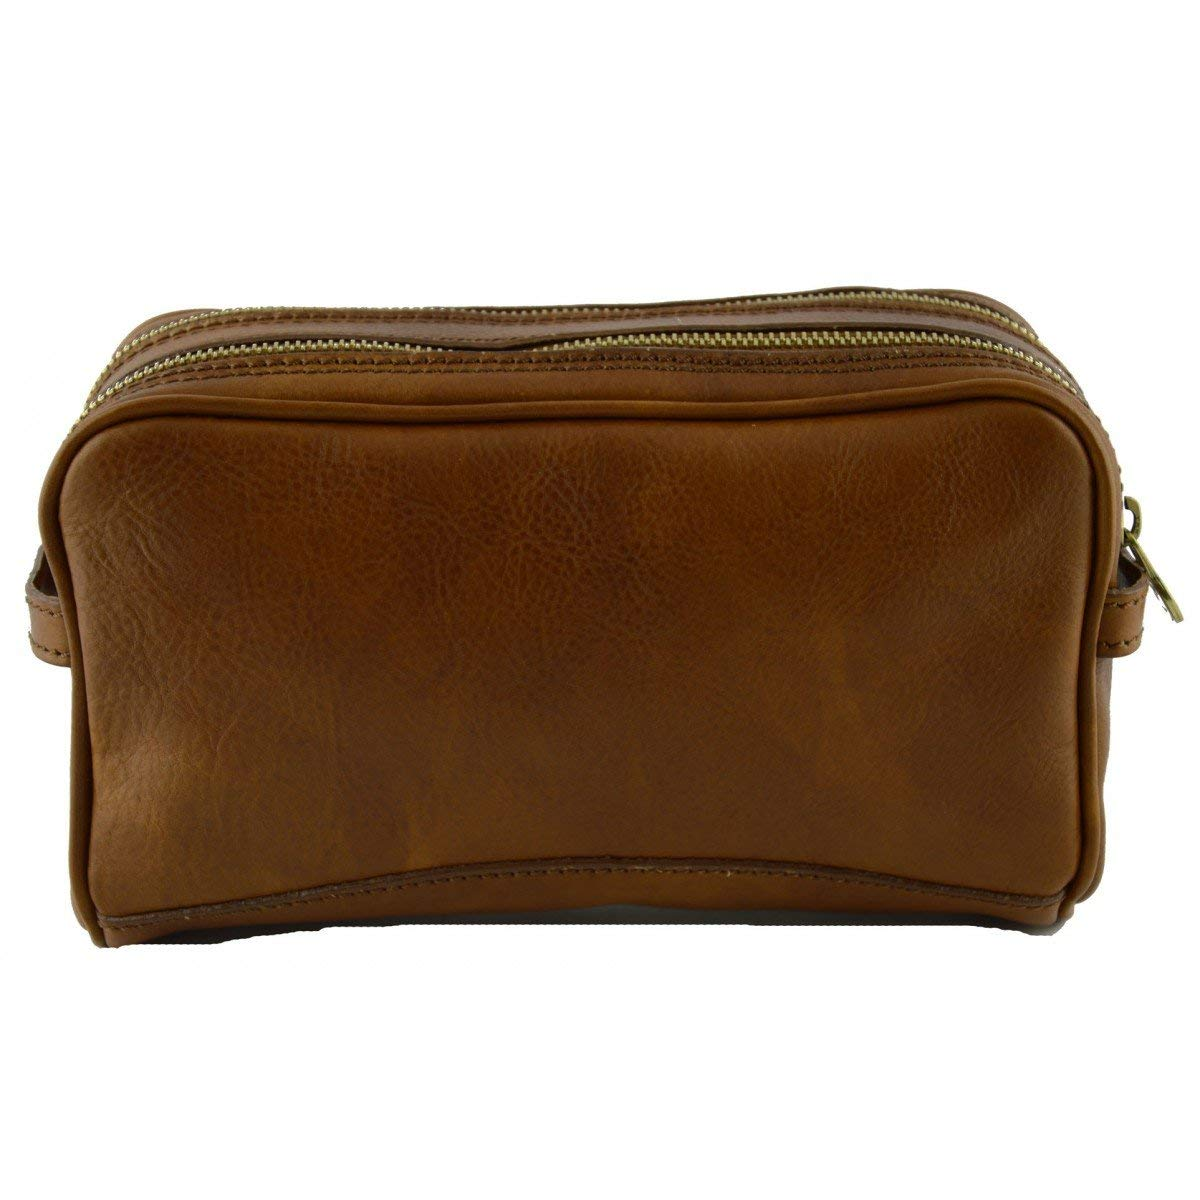 Dream Leather Bags Made in Italy Genuine Leather Vegetable Tanned Leather Wash Bag Color Tan